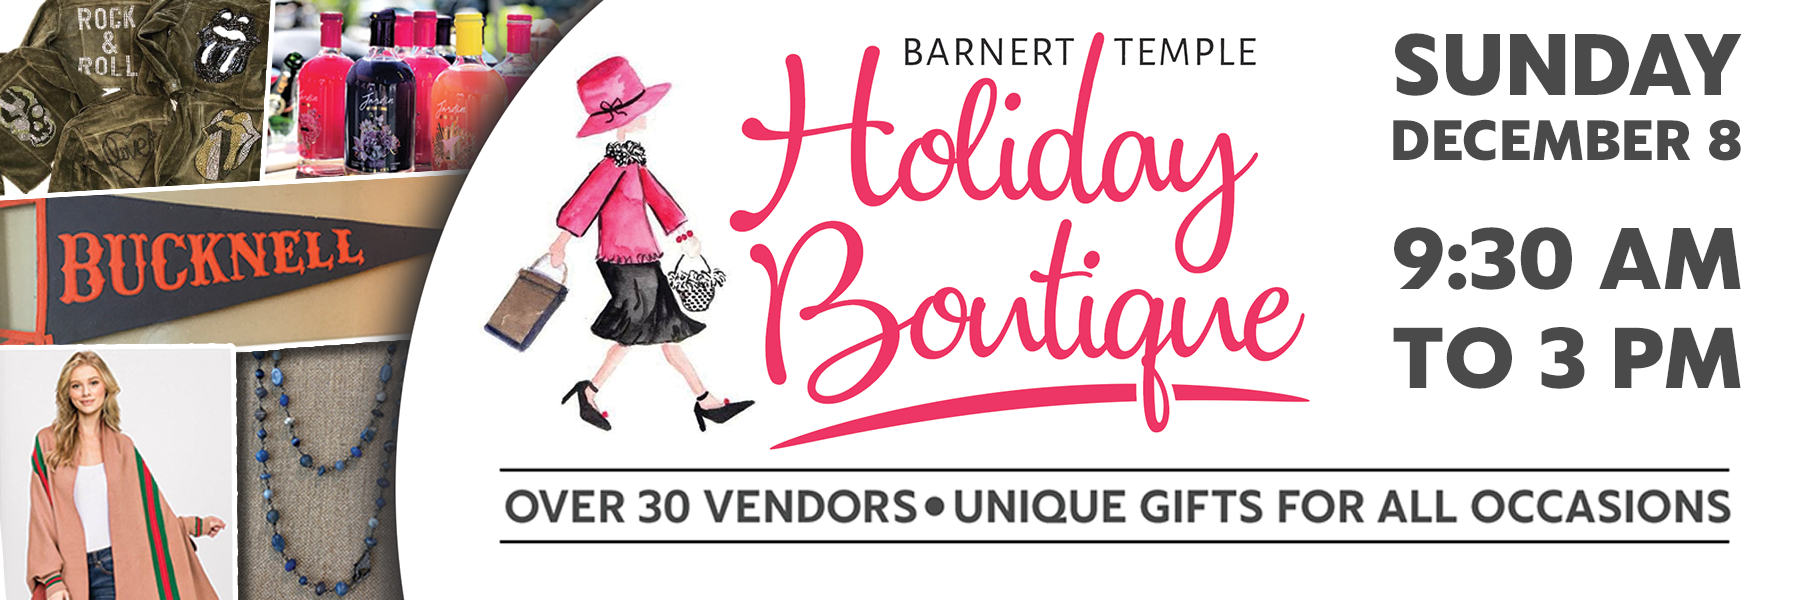 """<a href=""""https://www.barnerttemple.org/event/holidayboutique.html""""                                     target=""""_blank"""">                                                                 <span class=""""slider_title"""">                                     Celebrating 19 Years!  Open to the Public!                                </span>                                                                 </a>                                                                                                                                                                                       <span class=""""slider_description"""">Shop one the longest-running and best holiday boutiques in the area!  Free admission and major credit cards and Venmo accepted.  Jewelry, apparel, accessories, home decor, gourmet food, handbags, custom woodwork, hostess gifts, gift cards, Judaica and more!  Click above for details.</span>"""